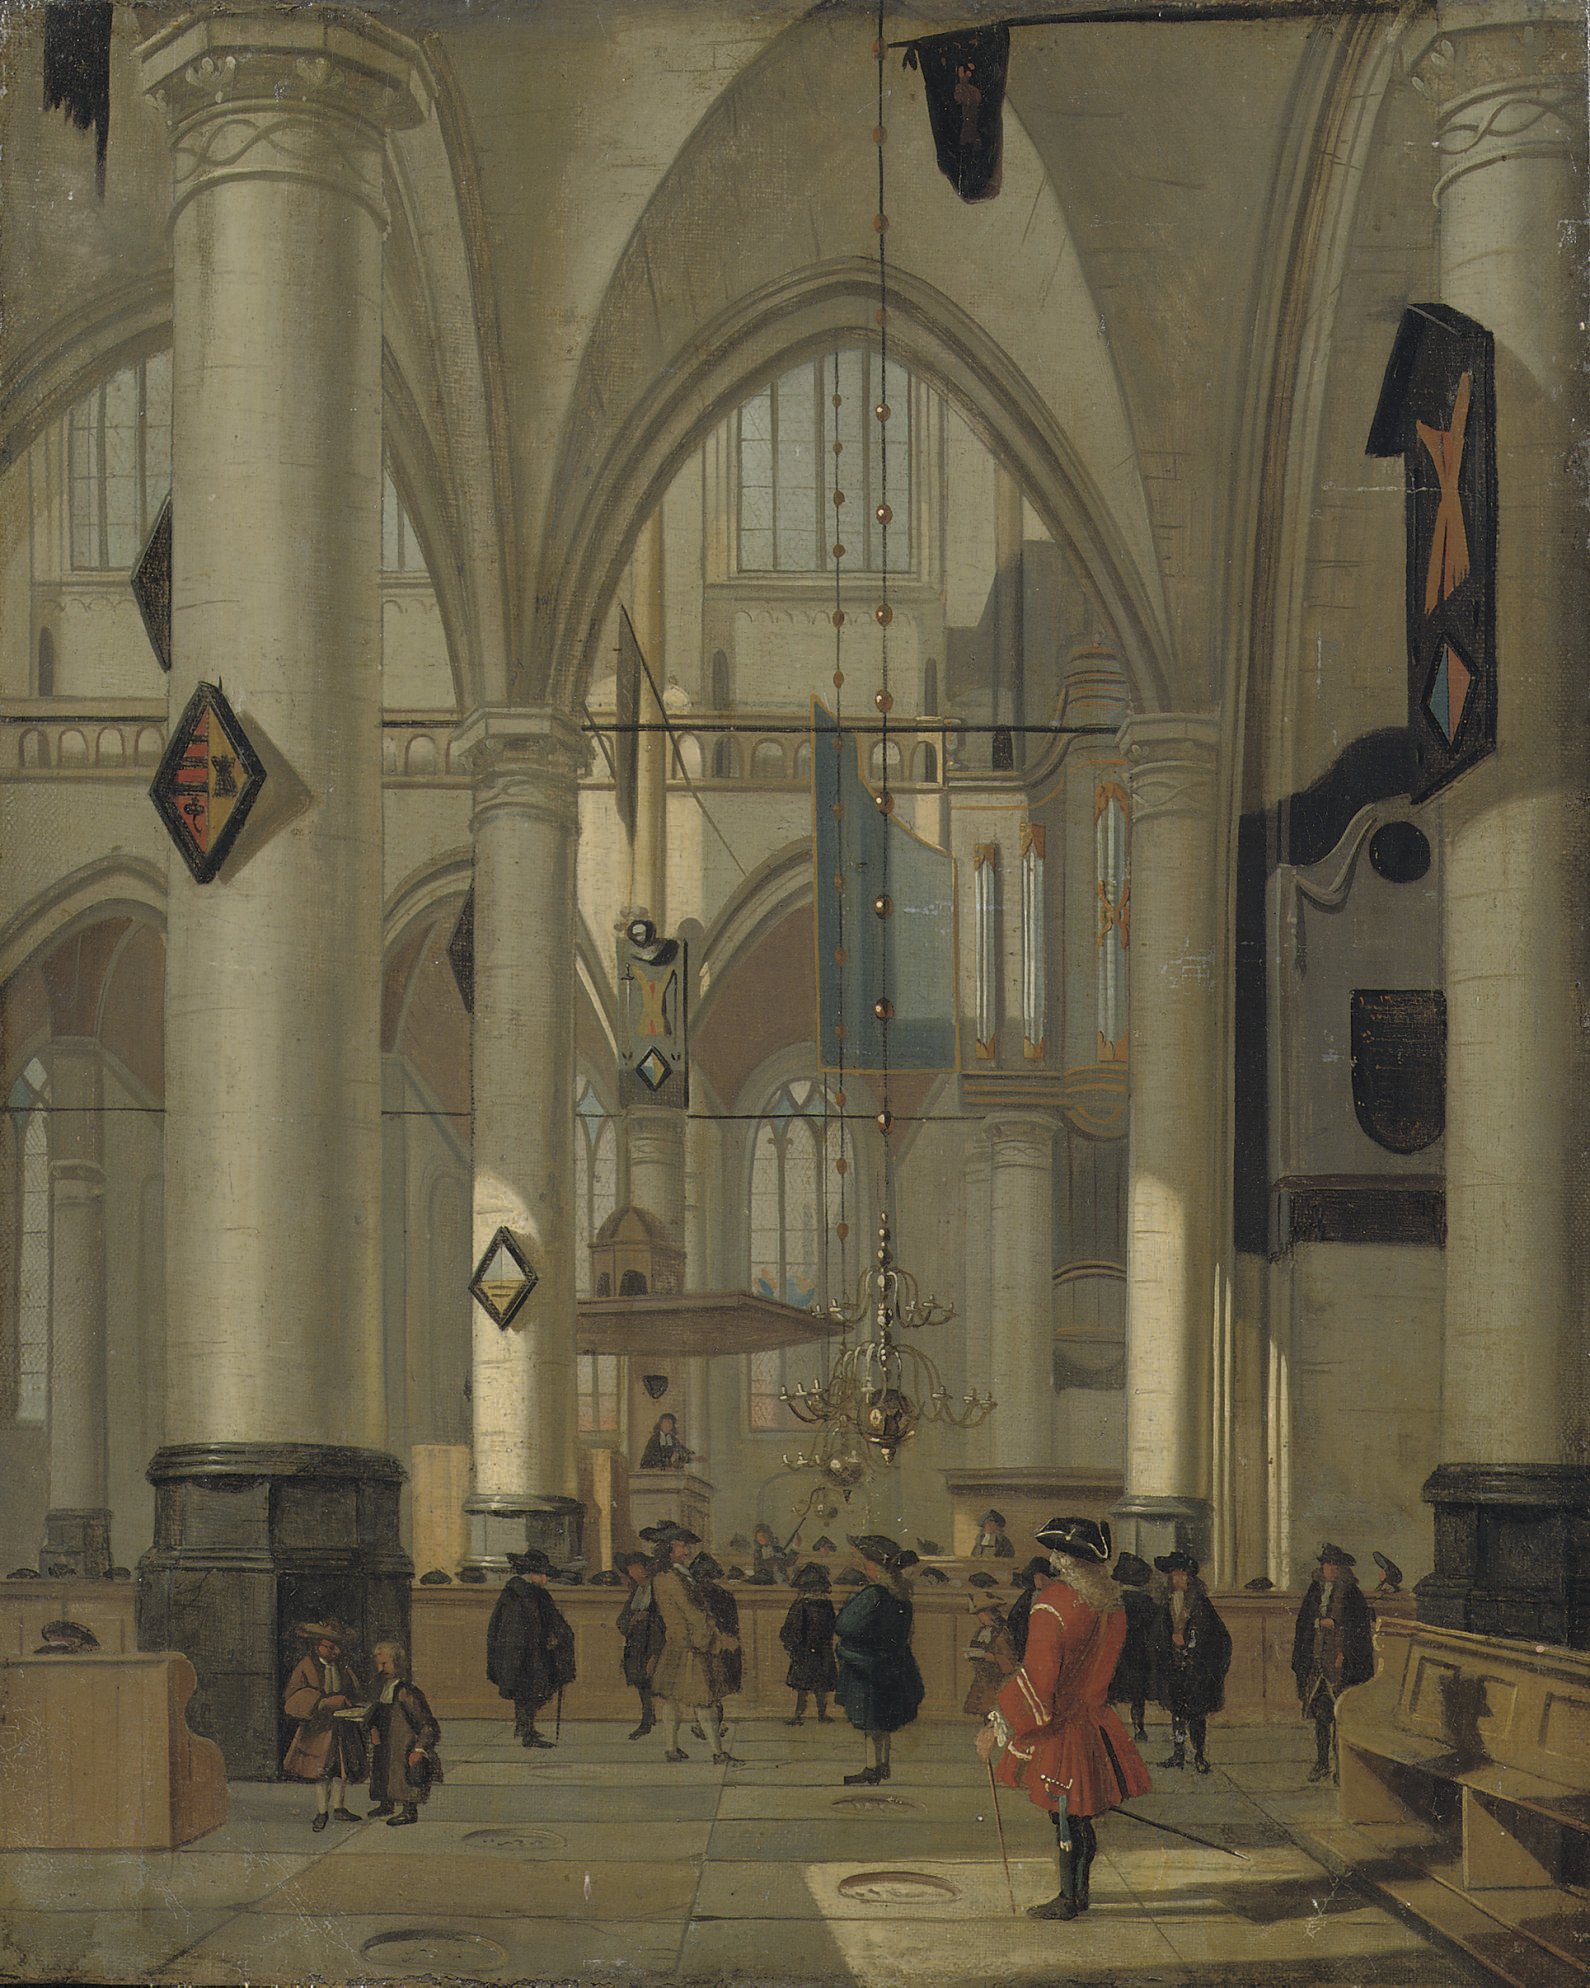 The interior of a protestant church with elegant figures